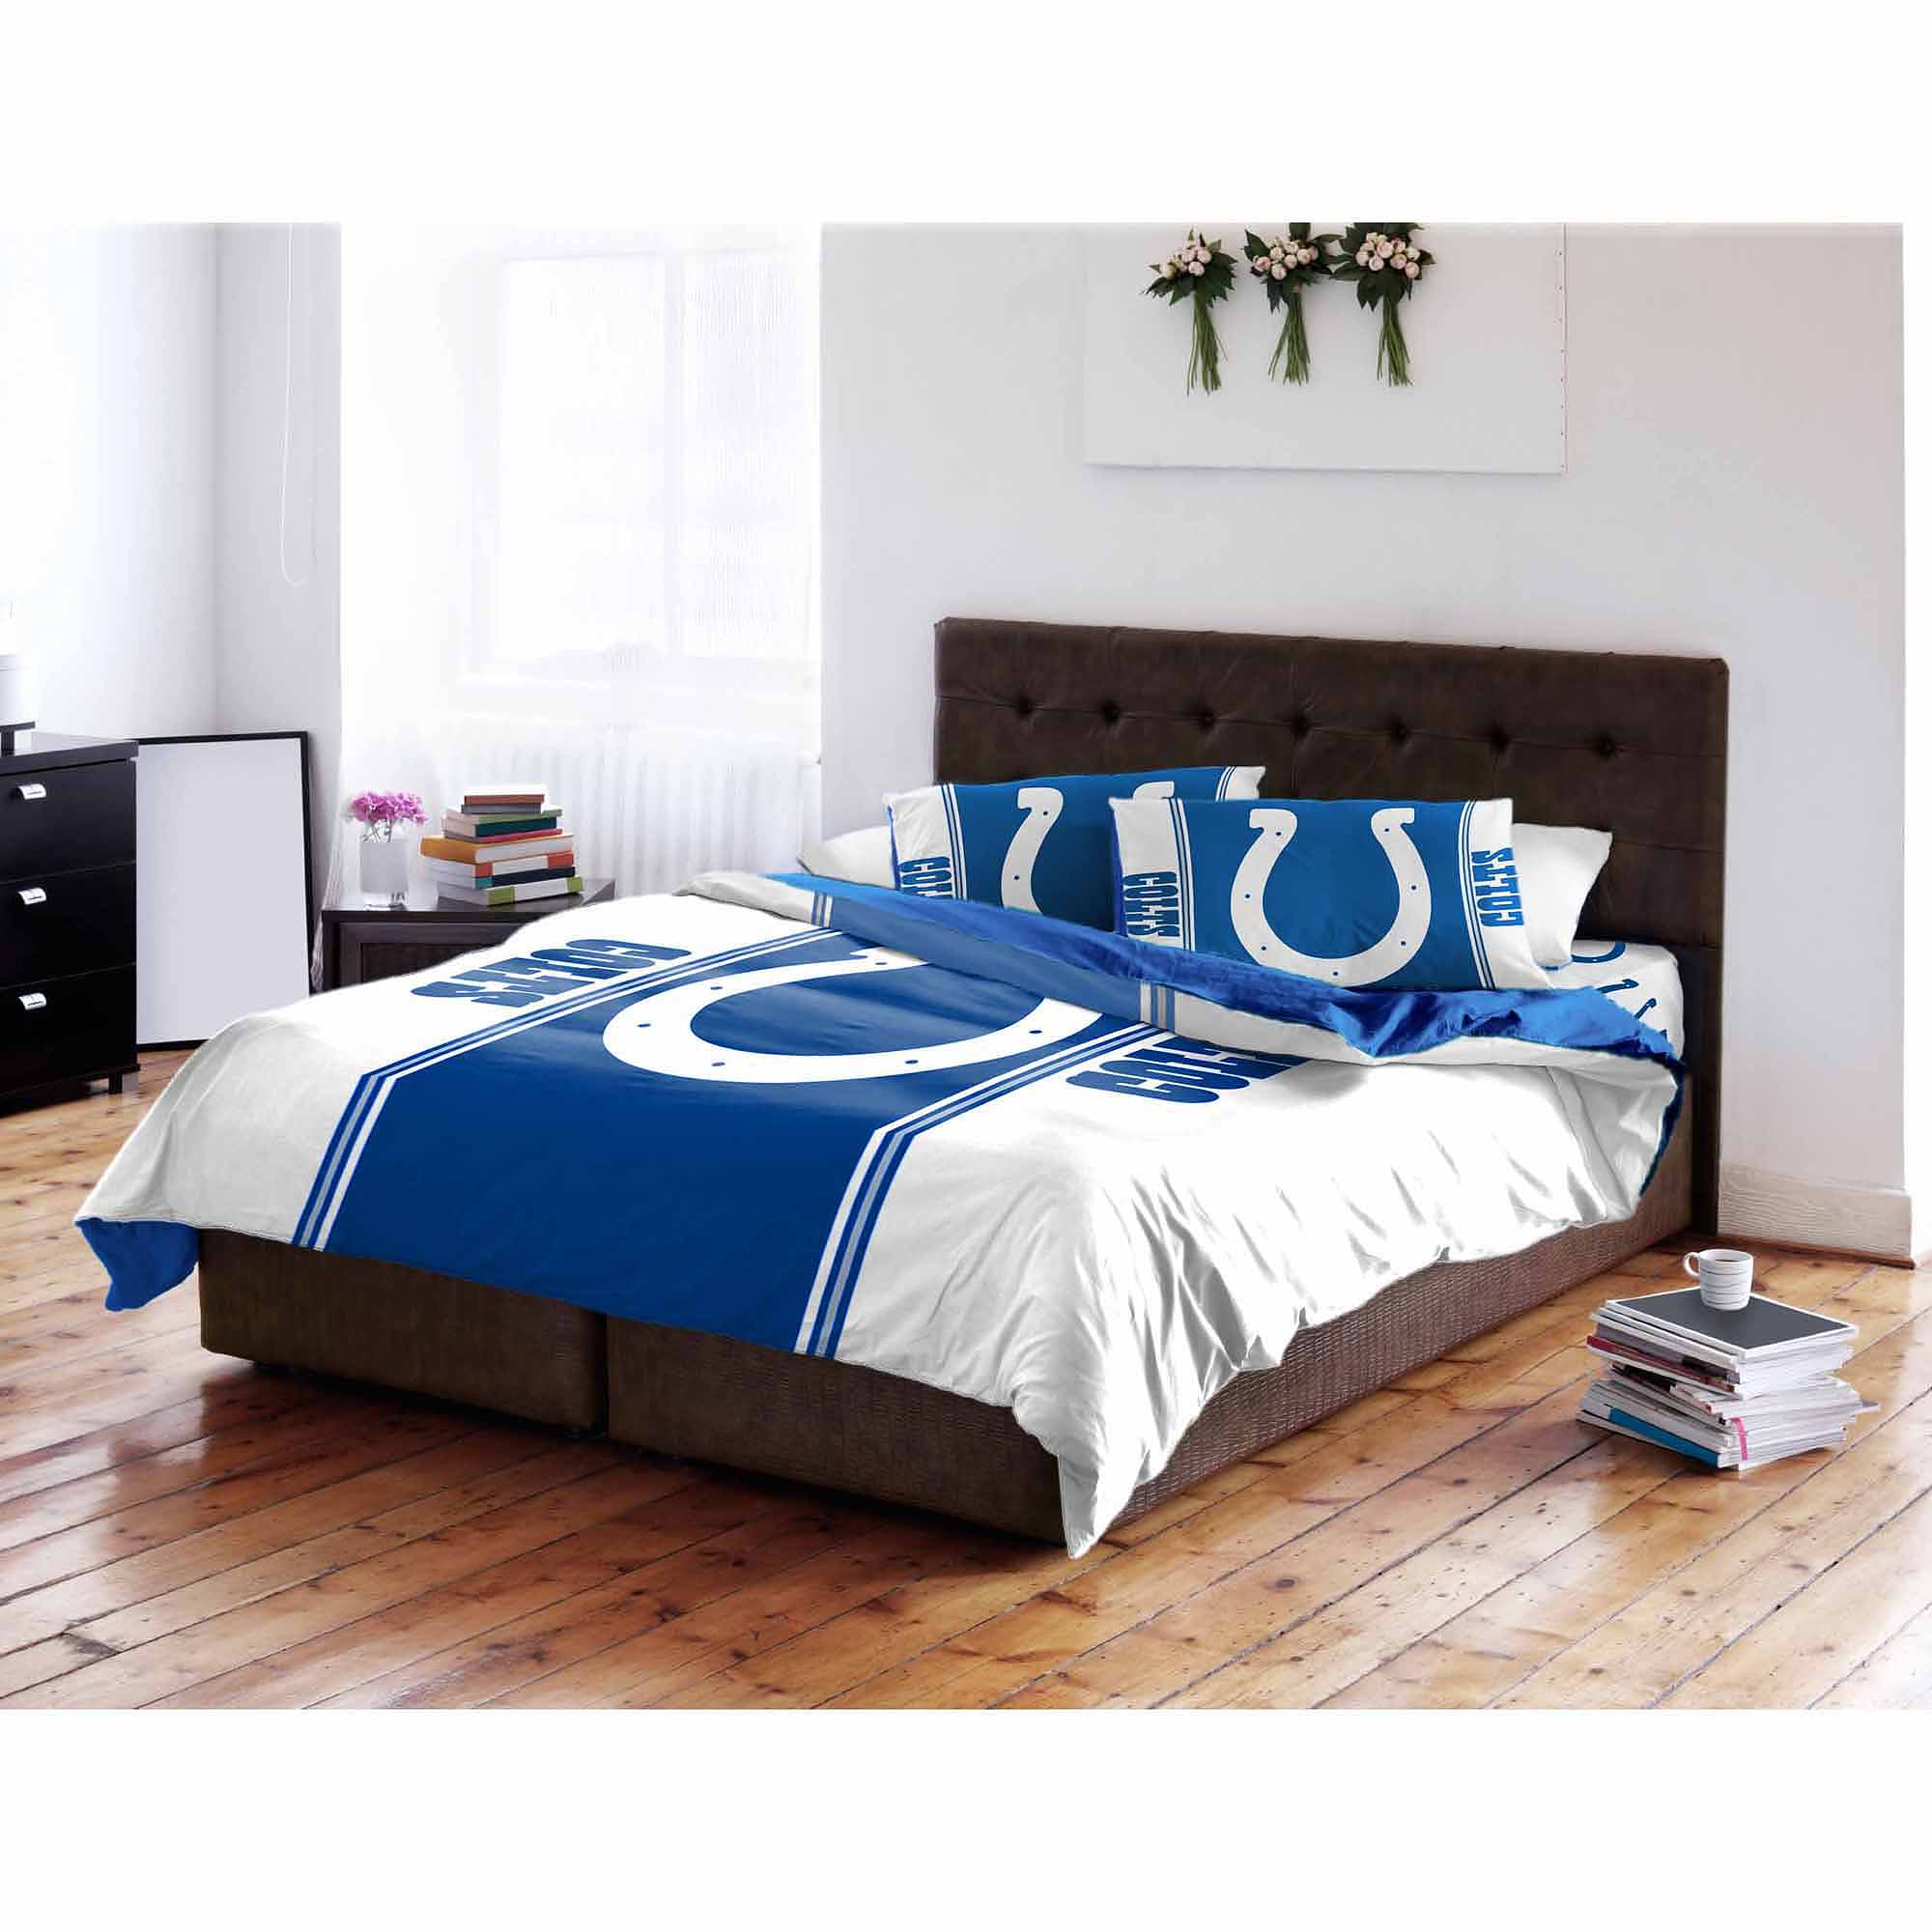 NFL Indianapolis Colts Twin/Full Bedding Comforter